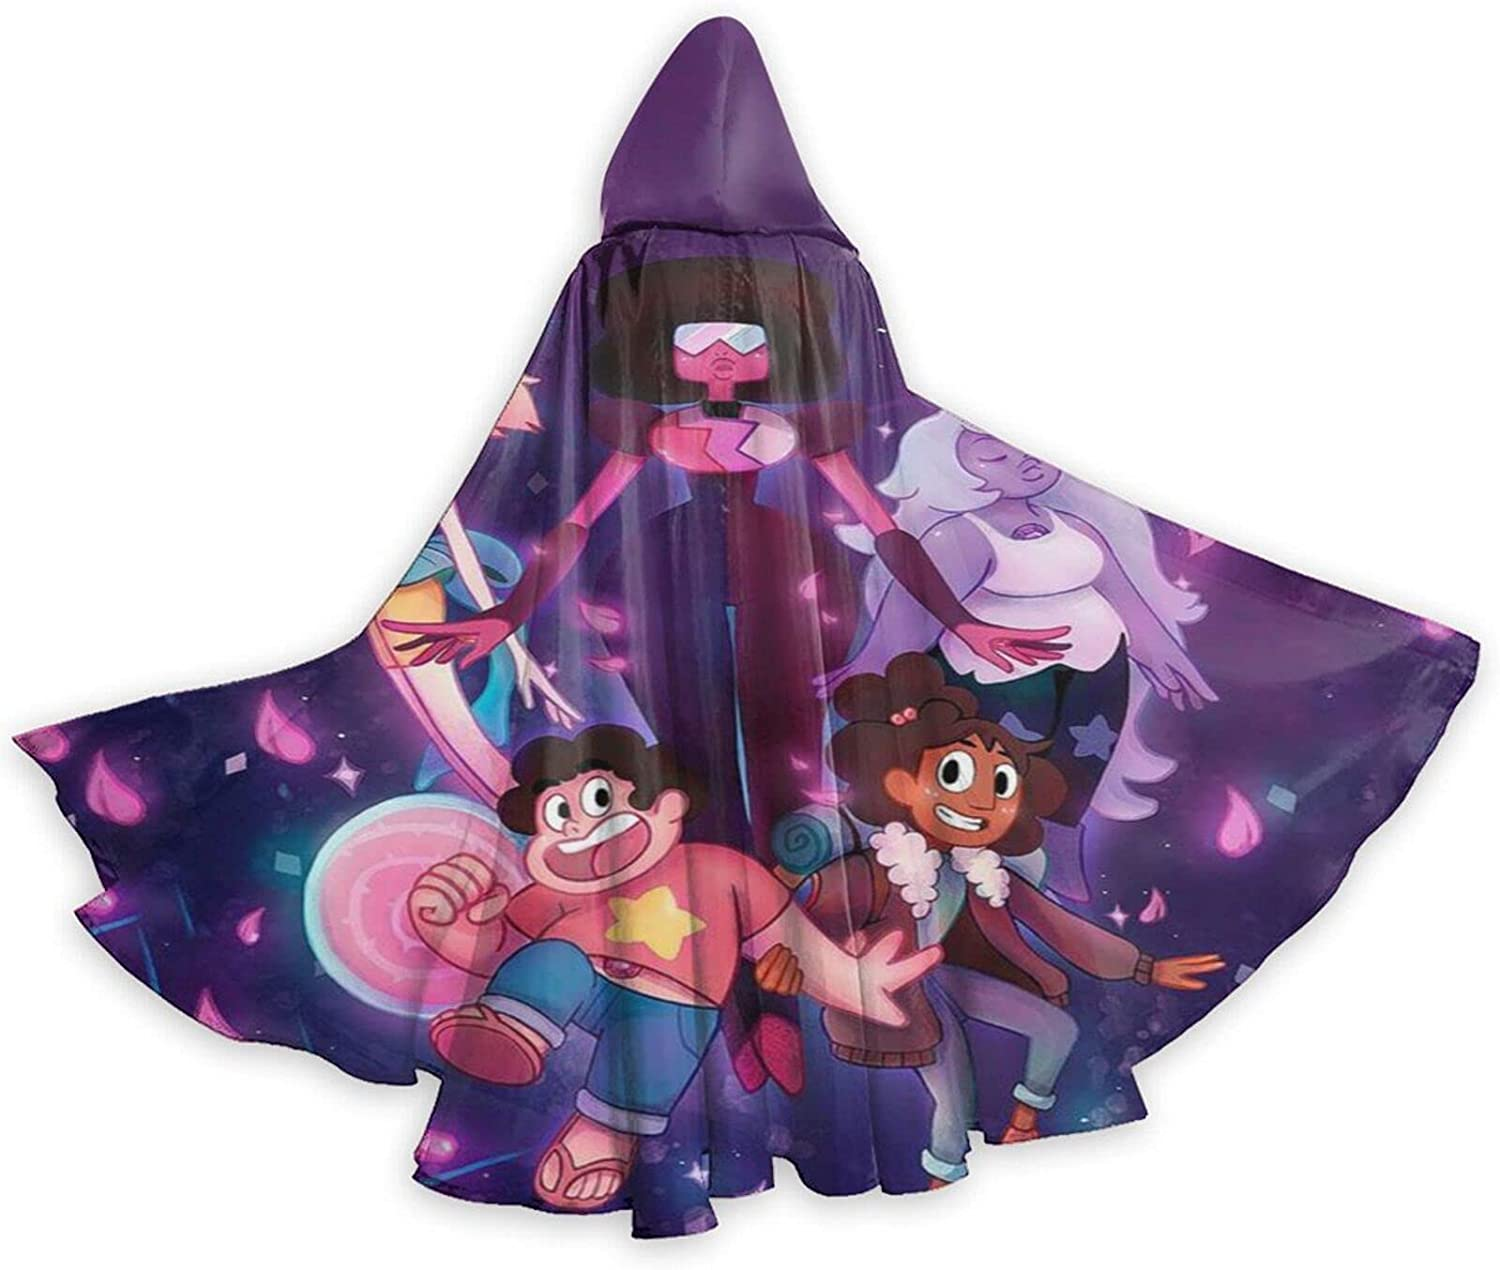 Unisex S-teven Un-iverse Anime Hooded Halloween Wizard Cloa Robe Superior Limited time sale